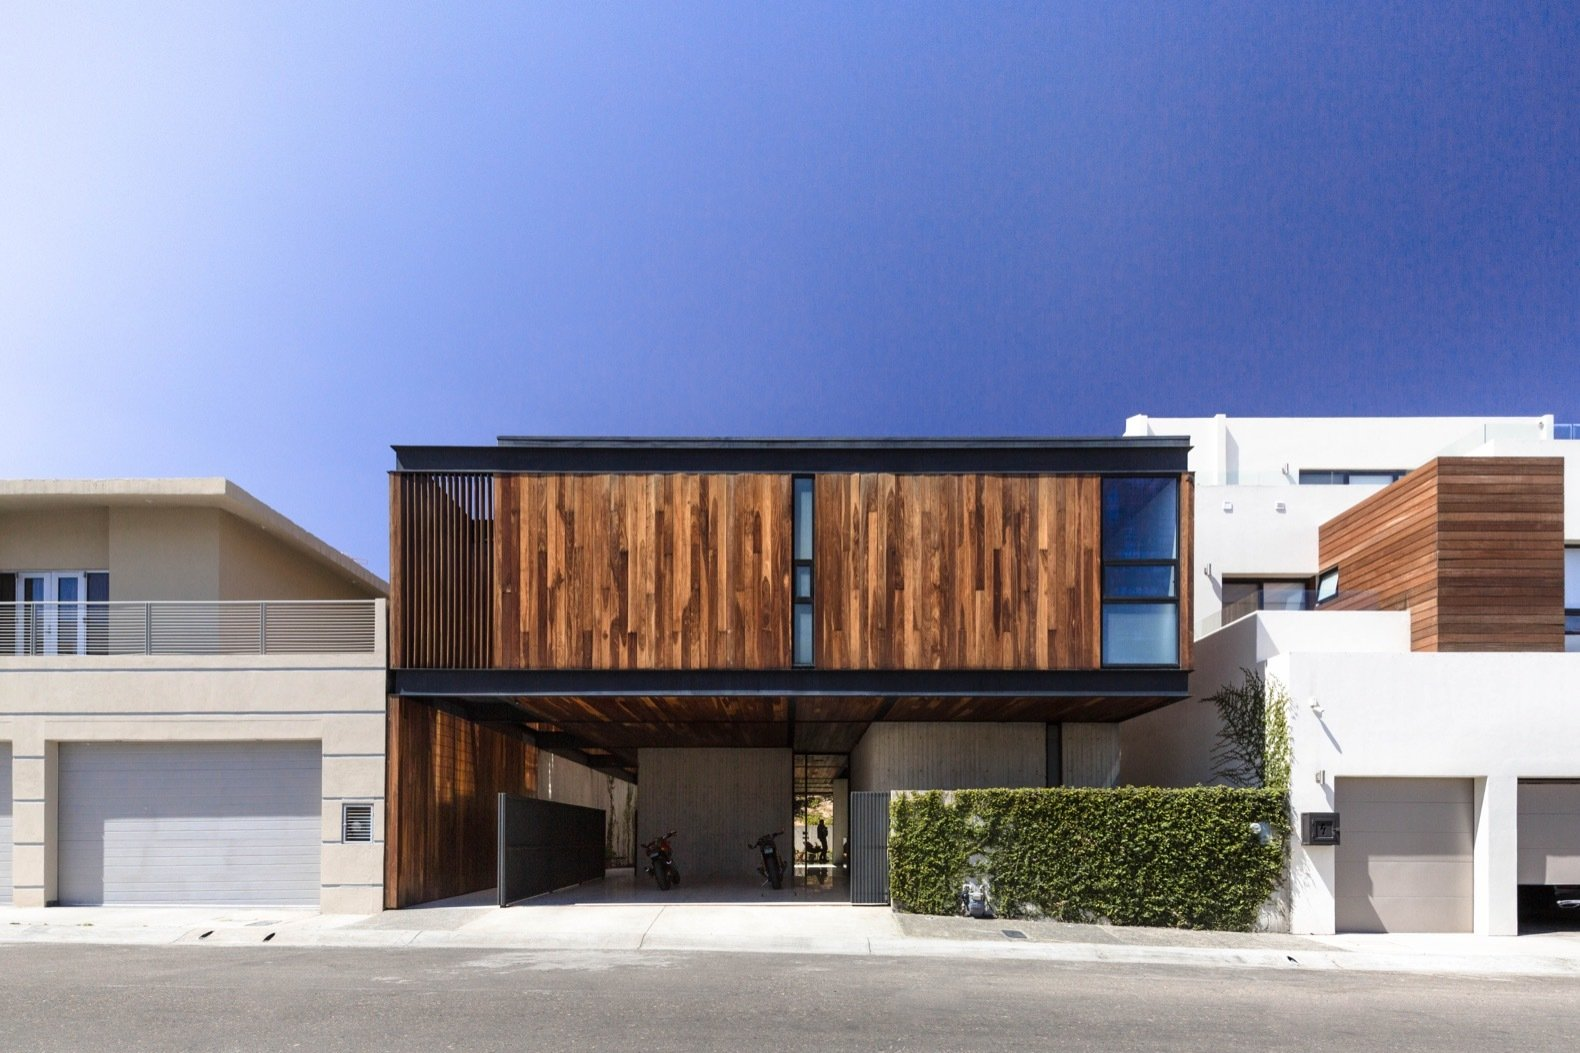 A Modern Mexican Home Rises With Vertical Timber Cladding